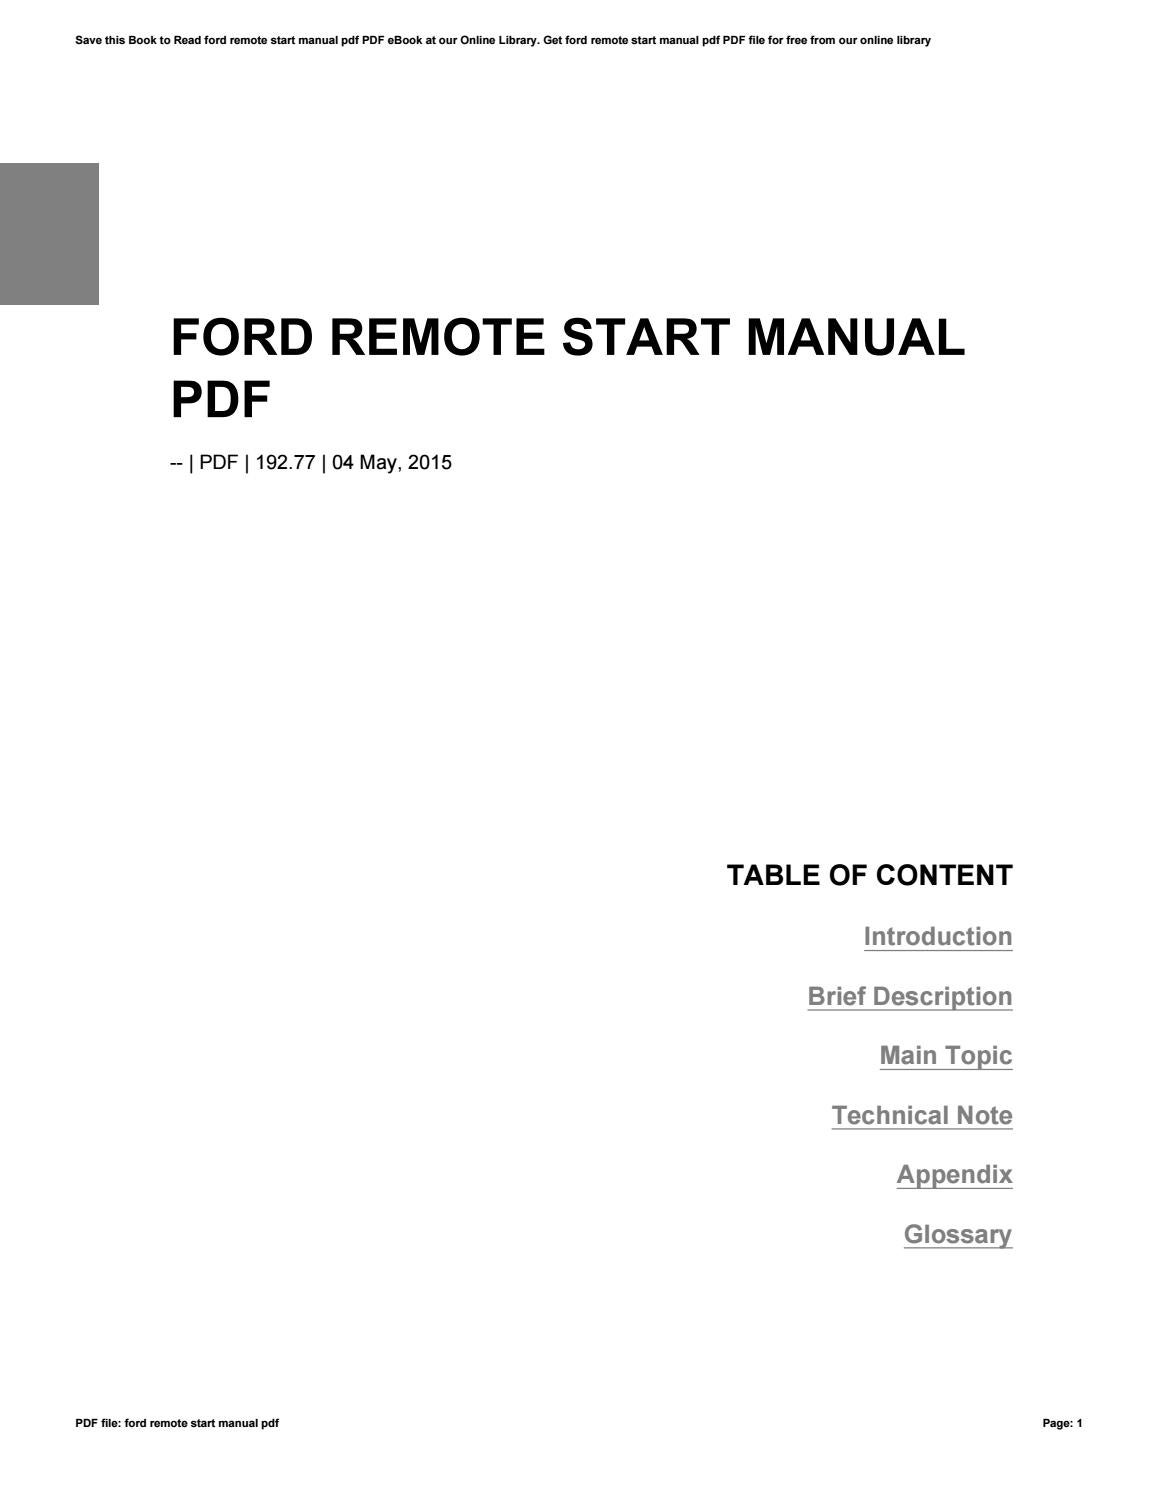 Ford Remote Start Manual Pdf By C735 Issuu Starter